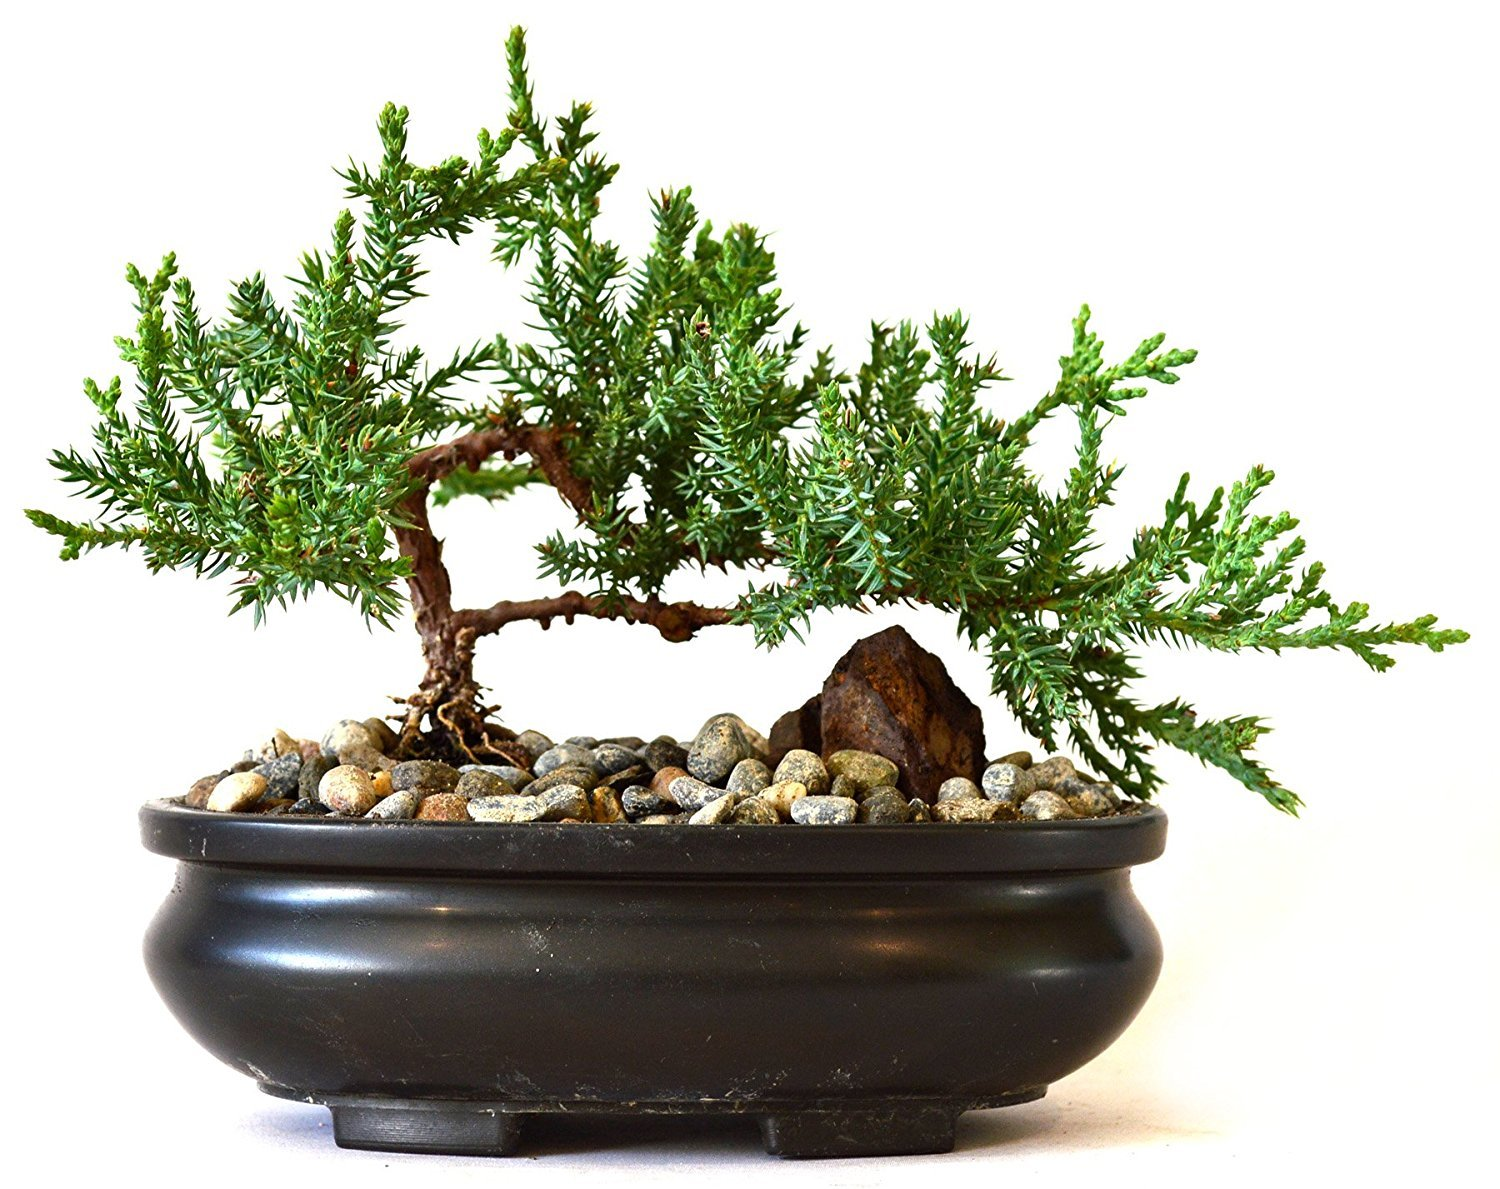 9GreenBox - Juniper Tree Bonsai with Bonsai Pot by 9GreenBox.com